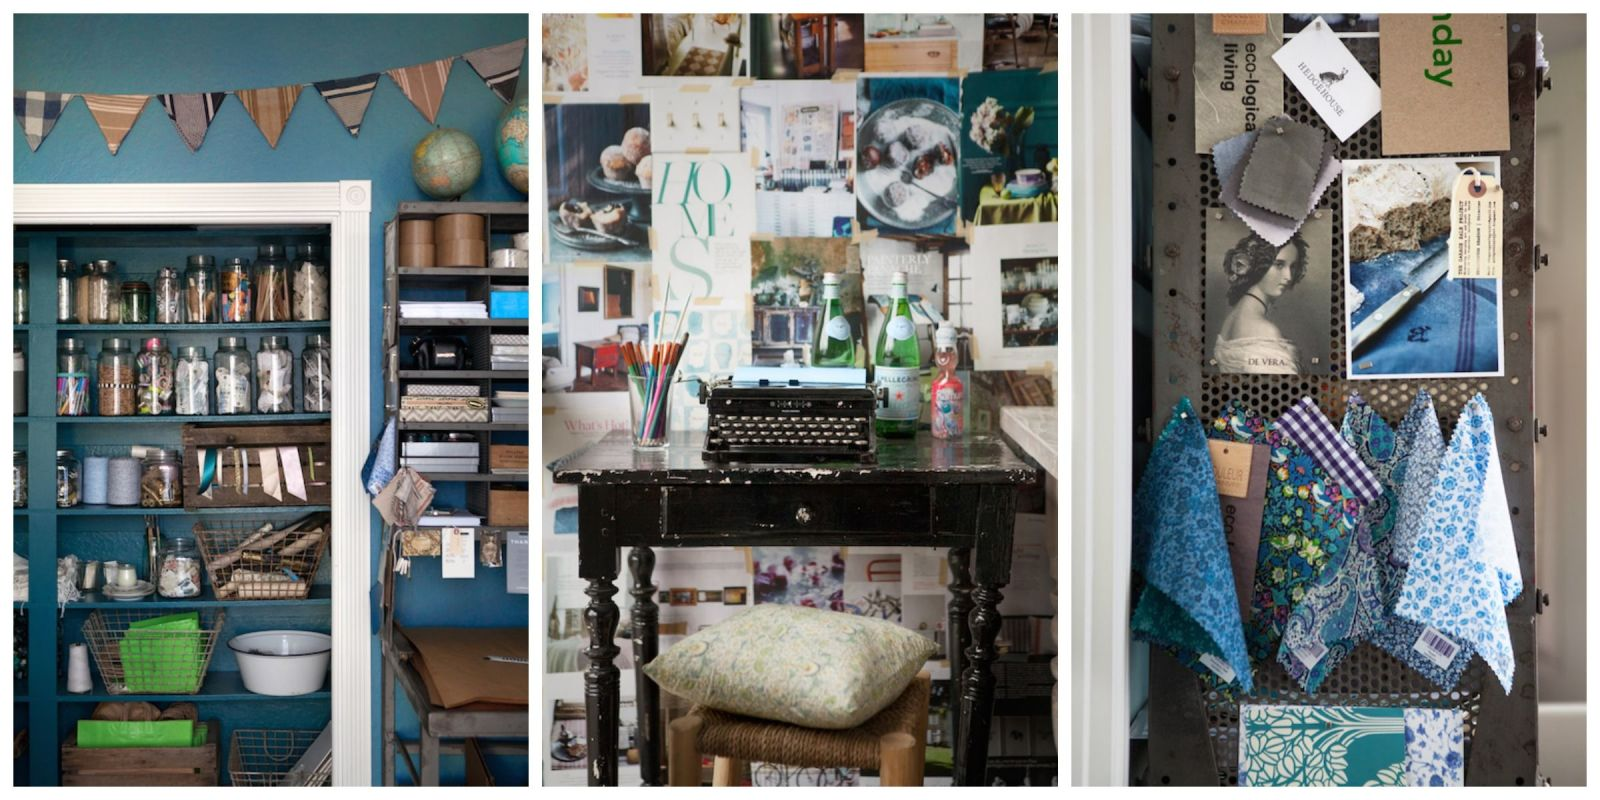 8 inspiring home office decorating ideas from a cozy and